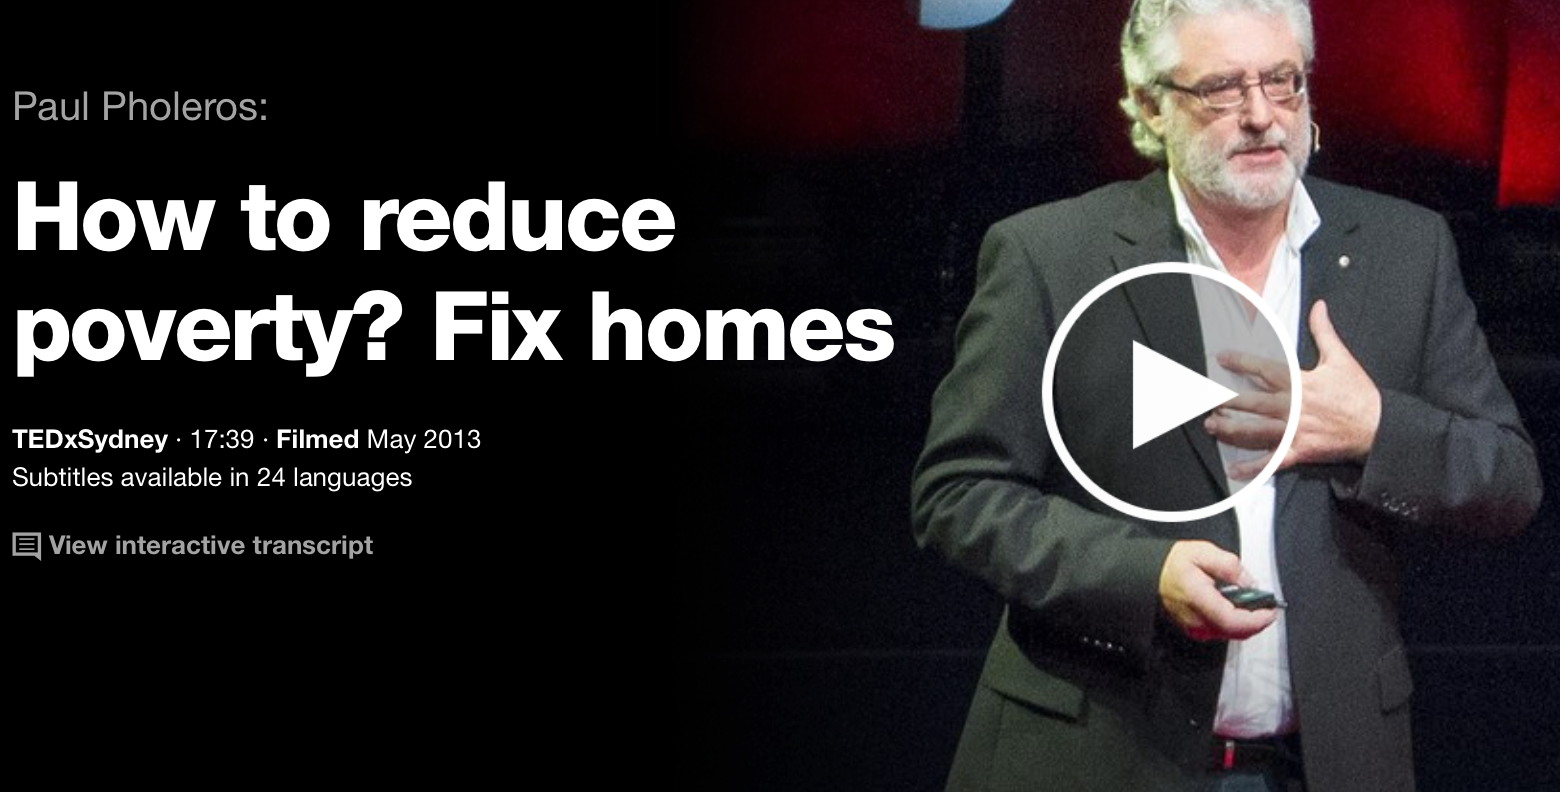 Paul_Pholeros__How_to_reduce_poverty__Fix_homes___TED_Talk___TED_com